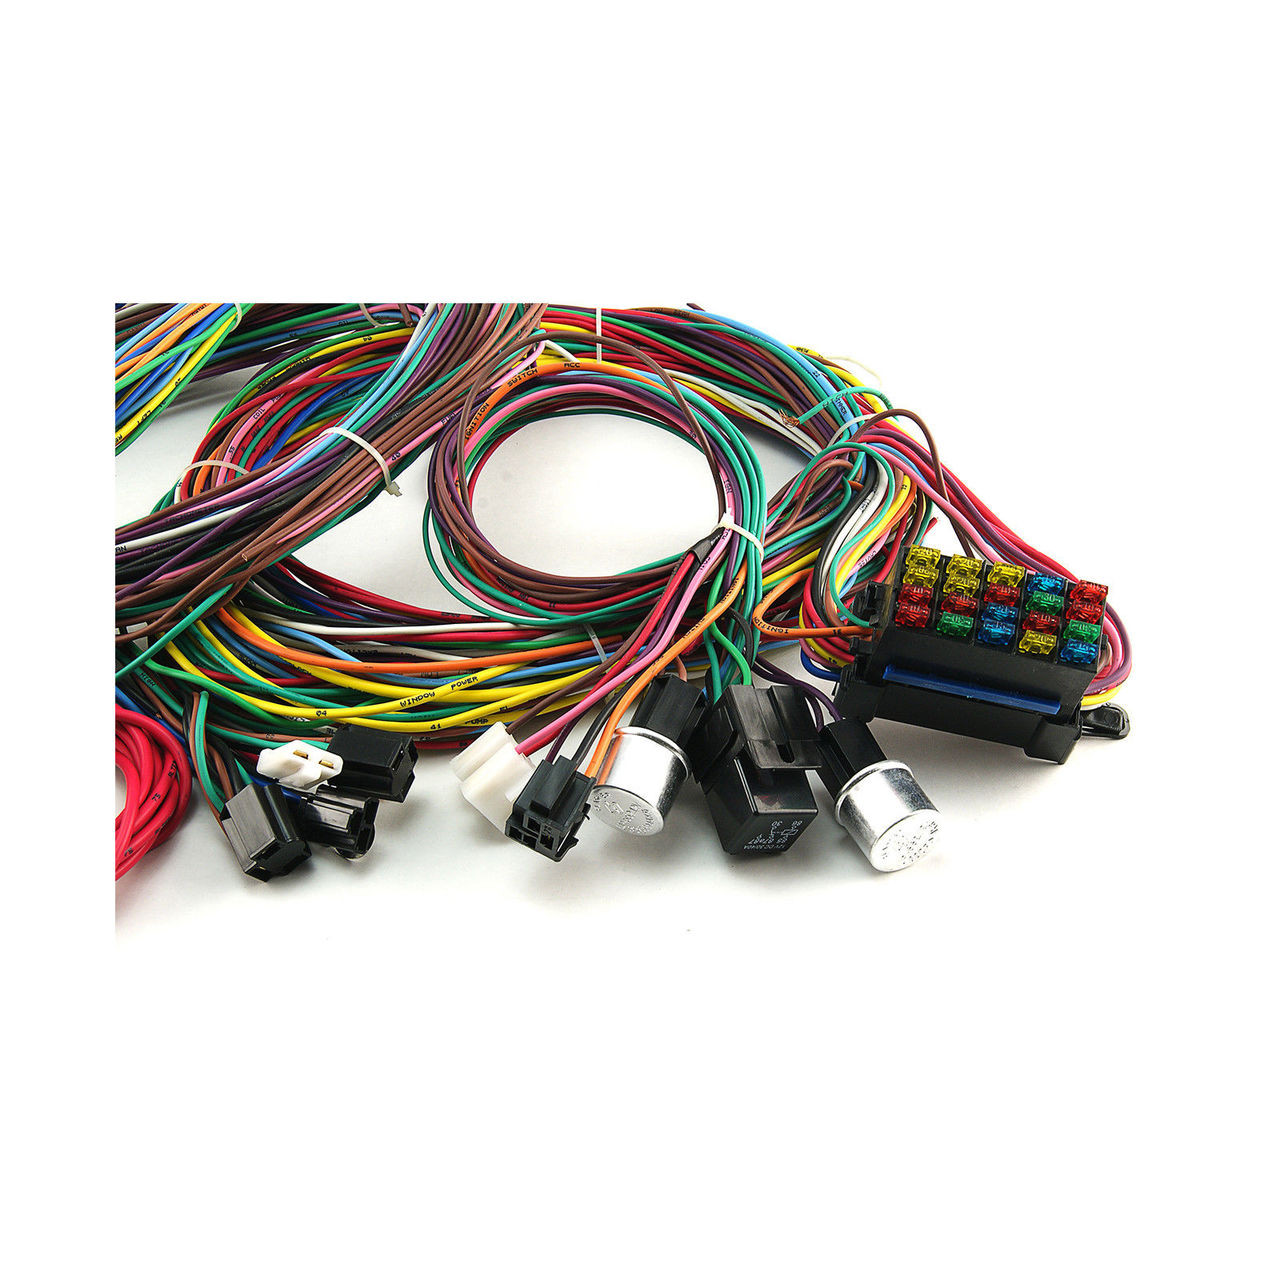 hight resolution of tlg universal 20 circuit wiring harness kit suit hot rod race car price 299 00 image 1 larger more photos